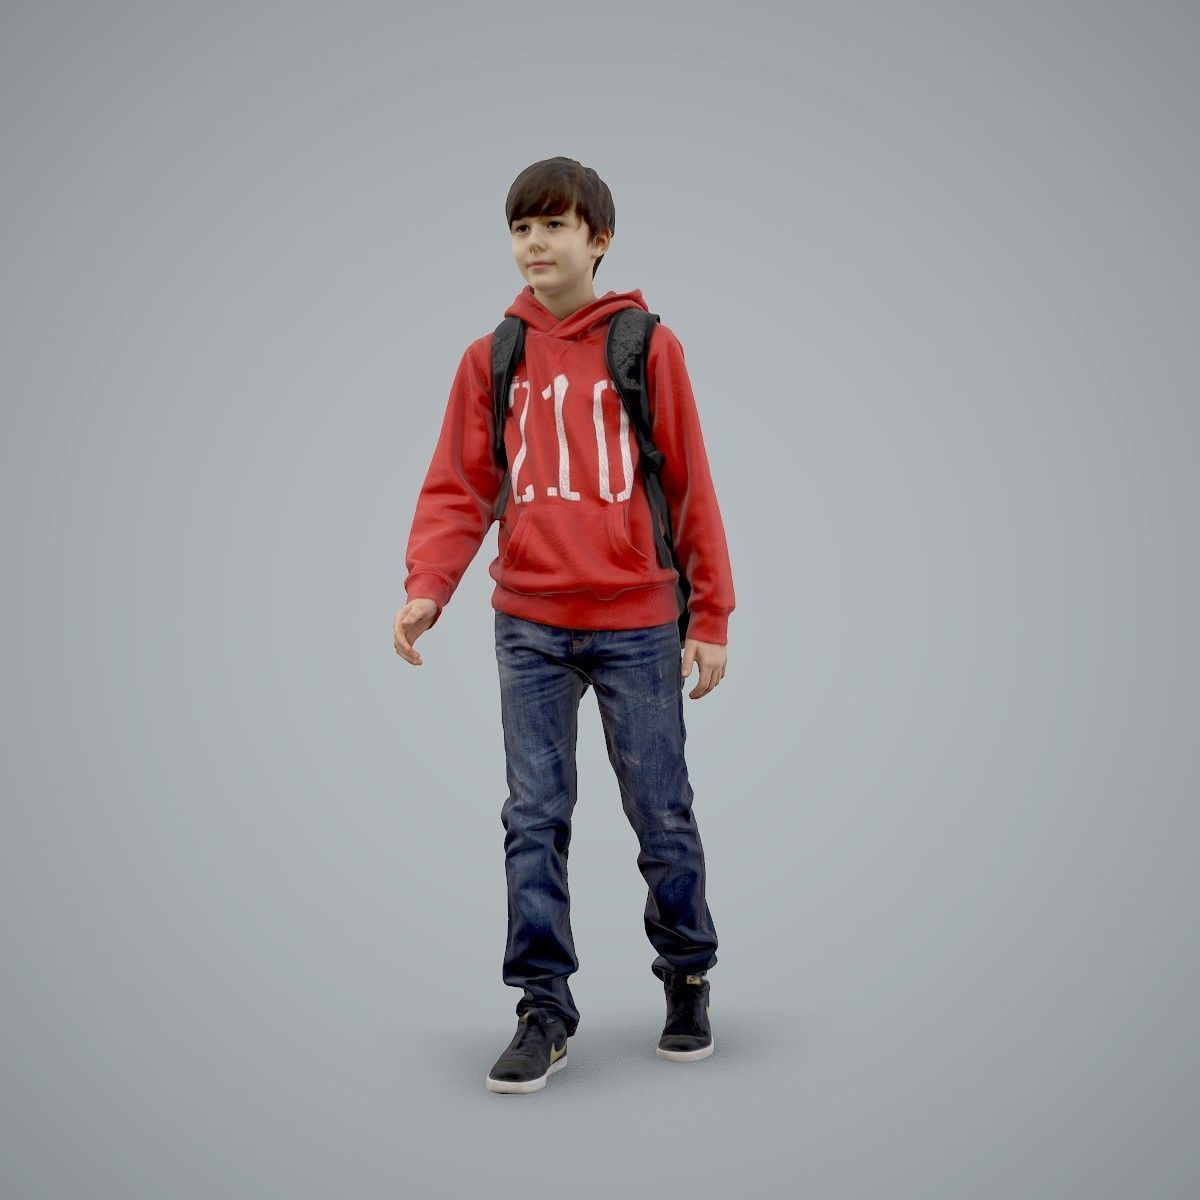 standing Casual Boy with Red Sweatshirt CBoy0004-HD2-O02P01-S